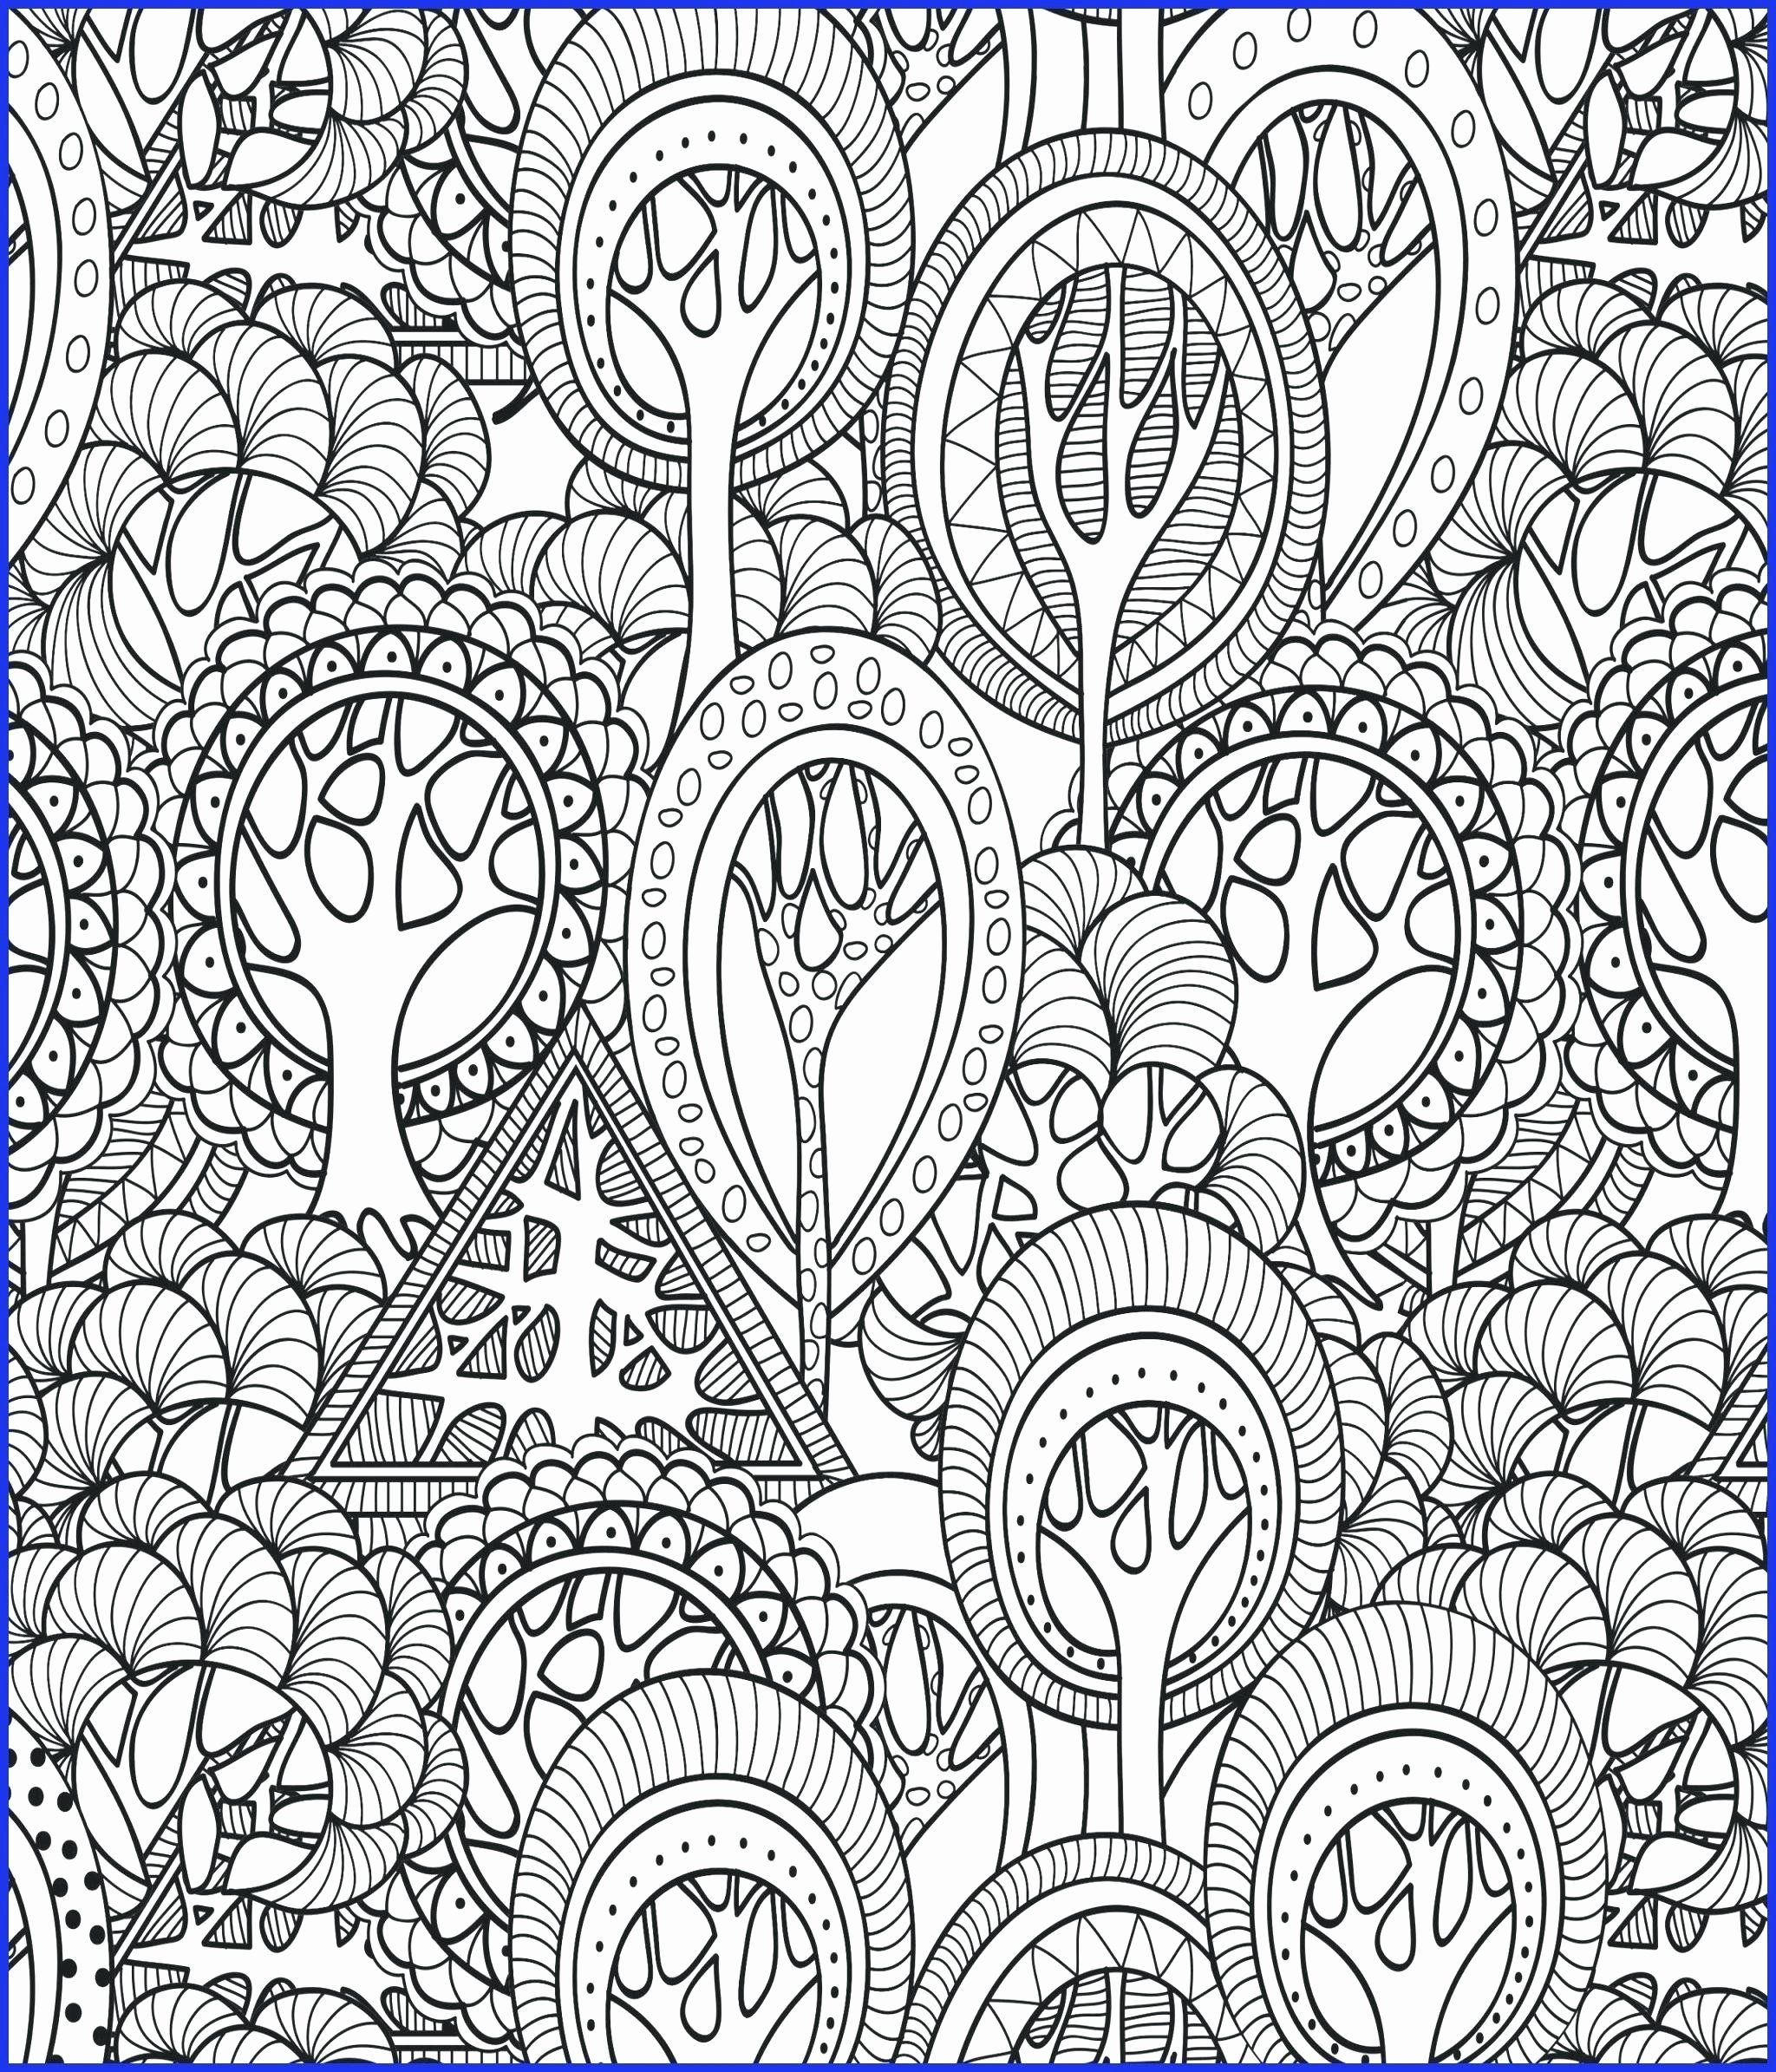 Intricate Flower Coloring Pages Beautiful Intricate Coloring Sheets For Adults Thermalprint In 2020 Fall Coloring Pages Designs Coloring Books Bible Coloring Pages